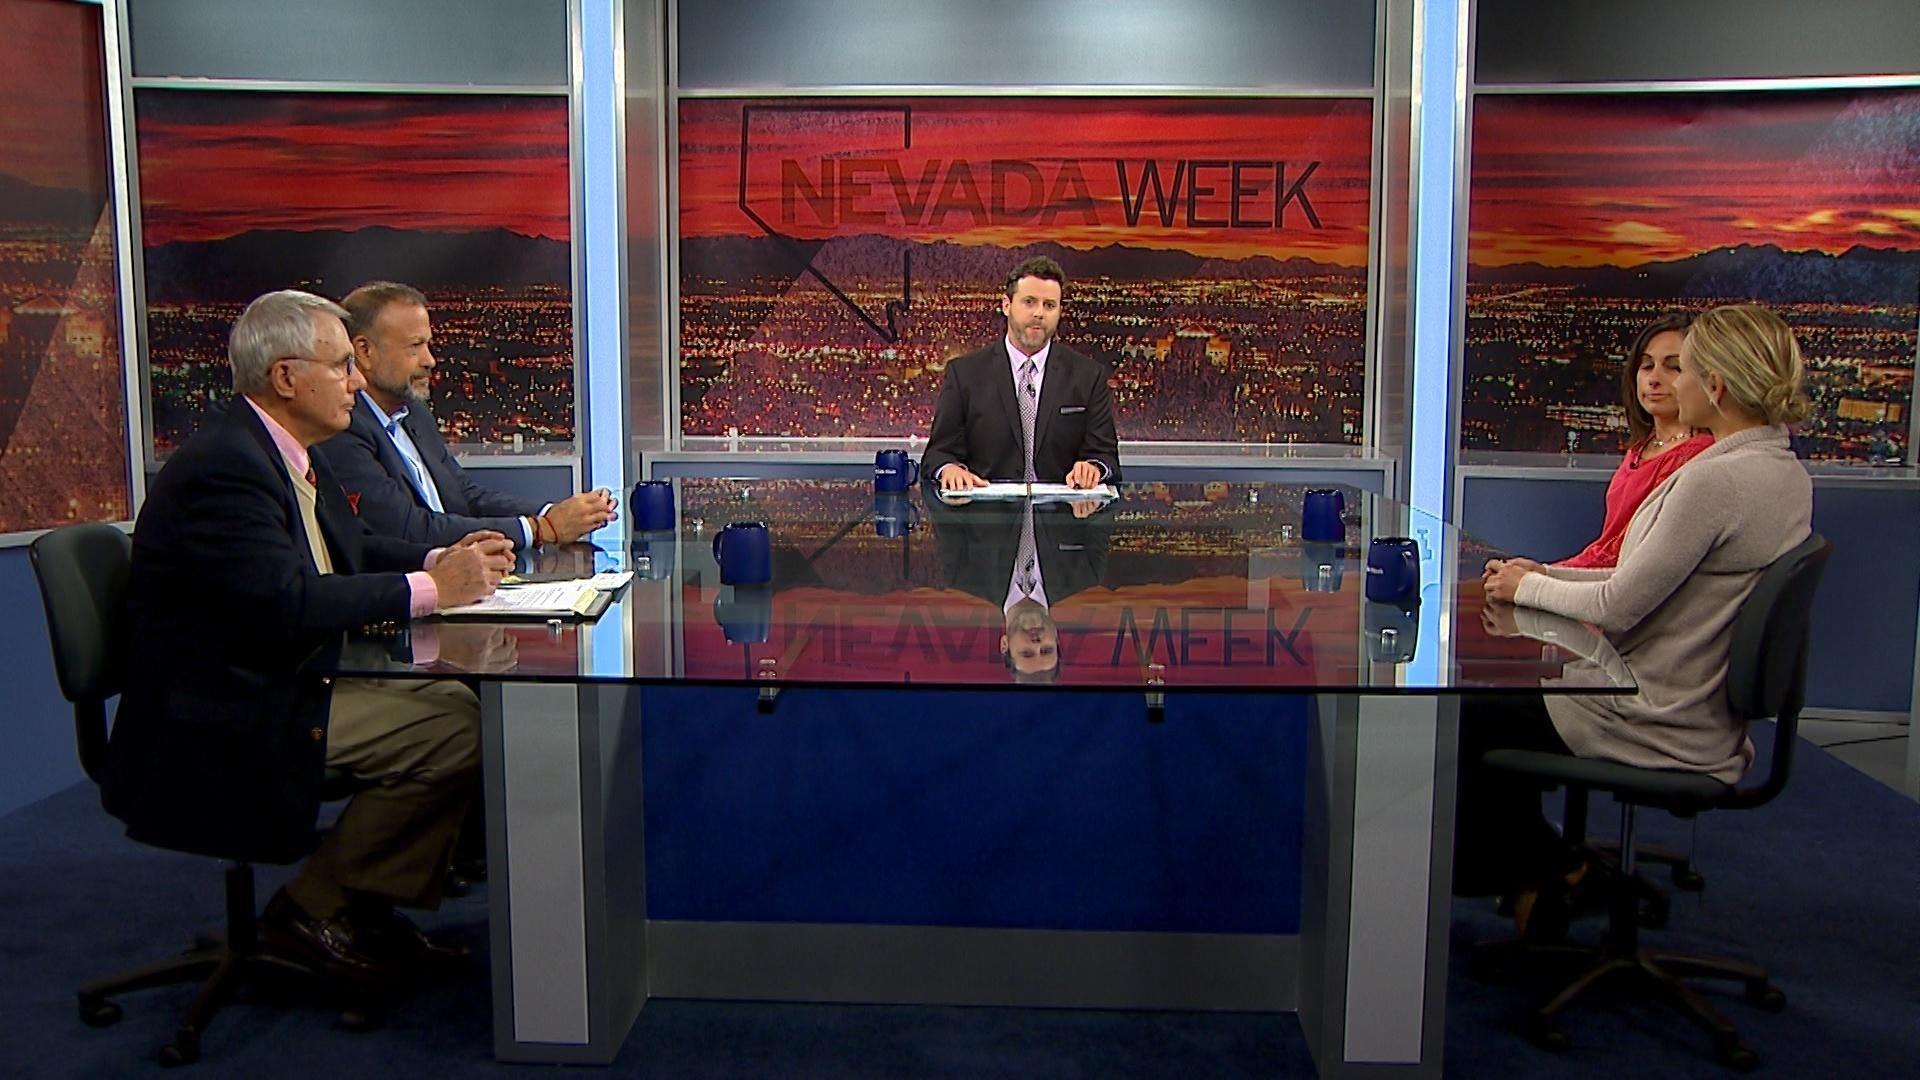 Nevada Week Chronic Pain and Opioids: Double Crisis #142